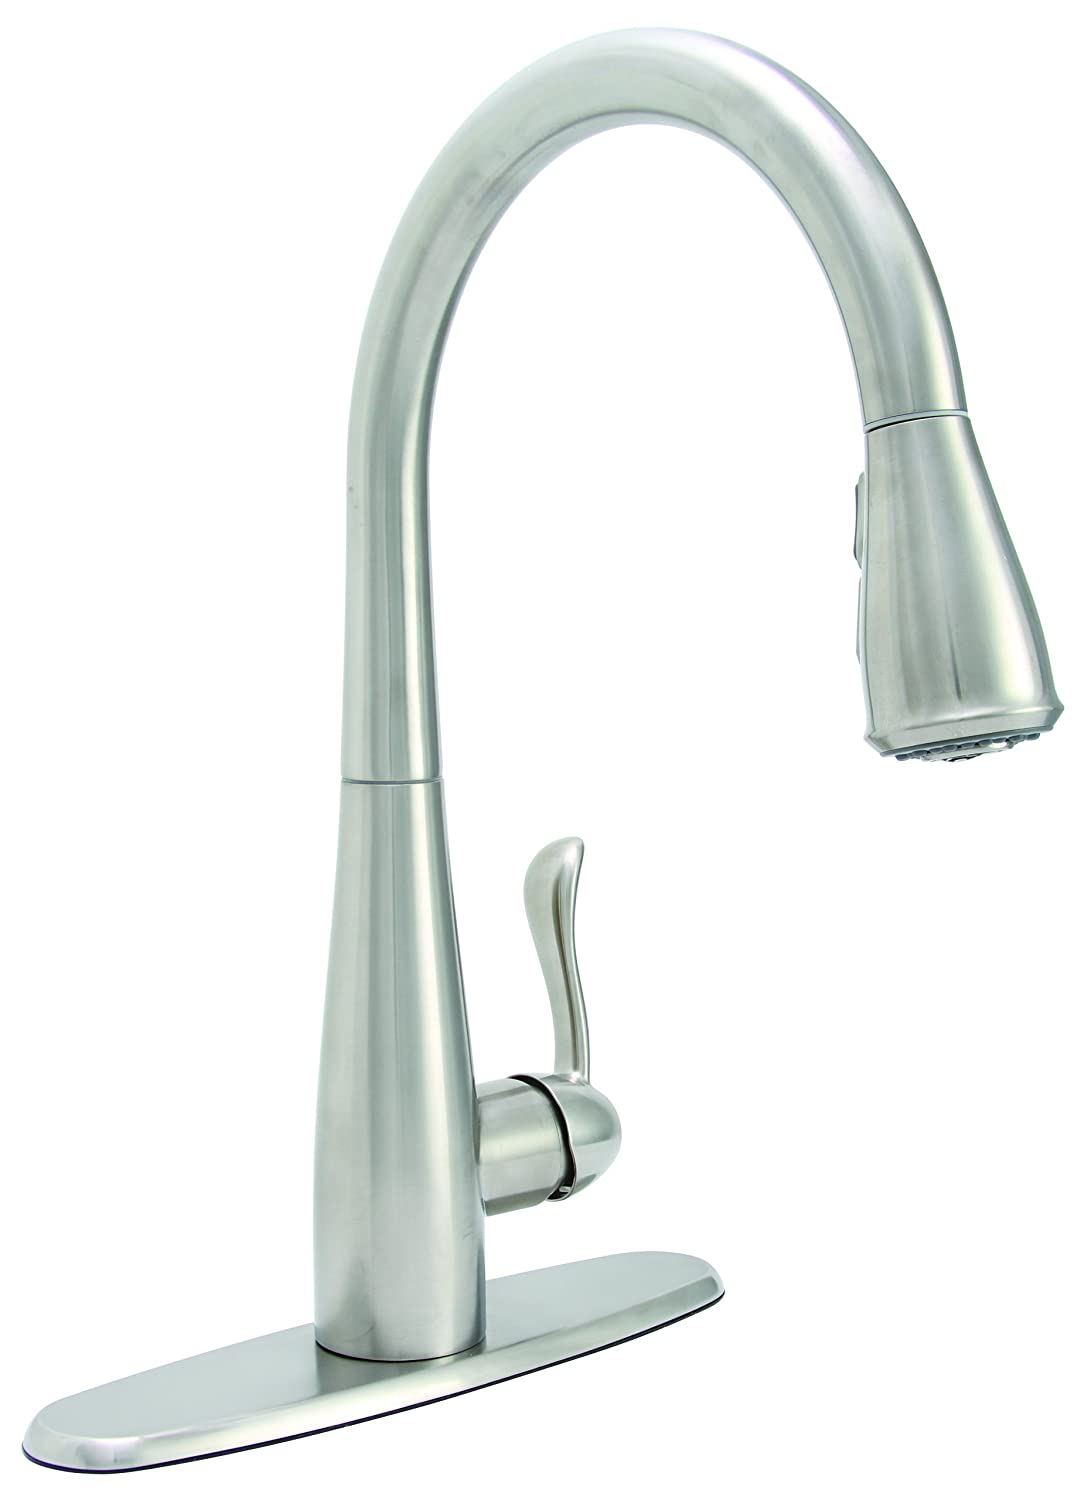 Marvelous Premier 284453 Sanibel Pull Down Kitchen Faucet With Single Handle,  Stainless Steel, Lead Free   Touch On Kitchen Sink Faucets   Amazon.com